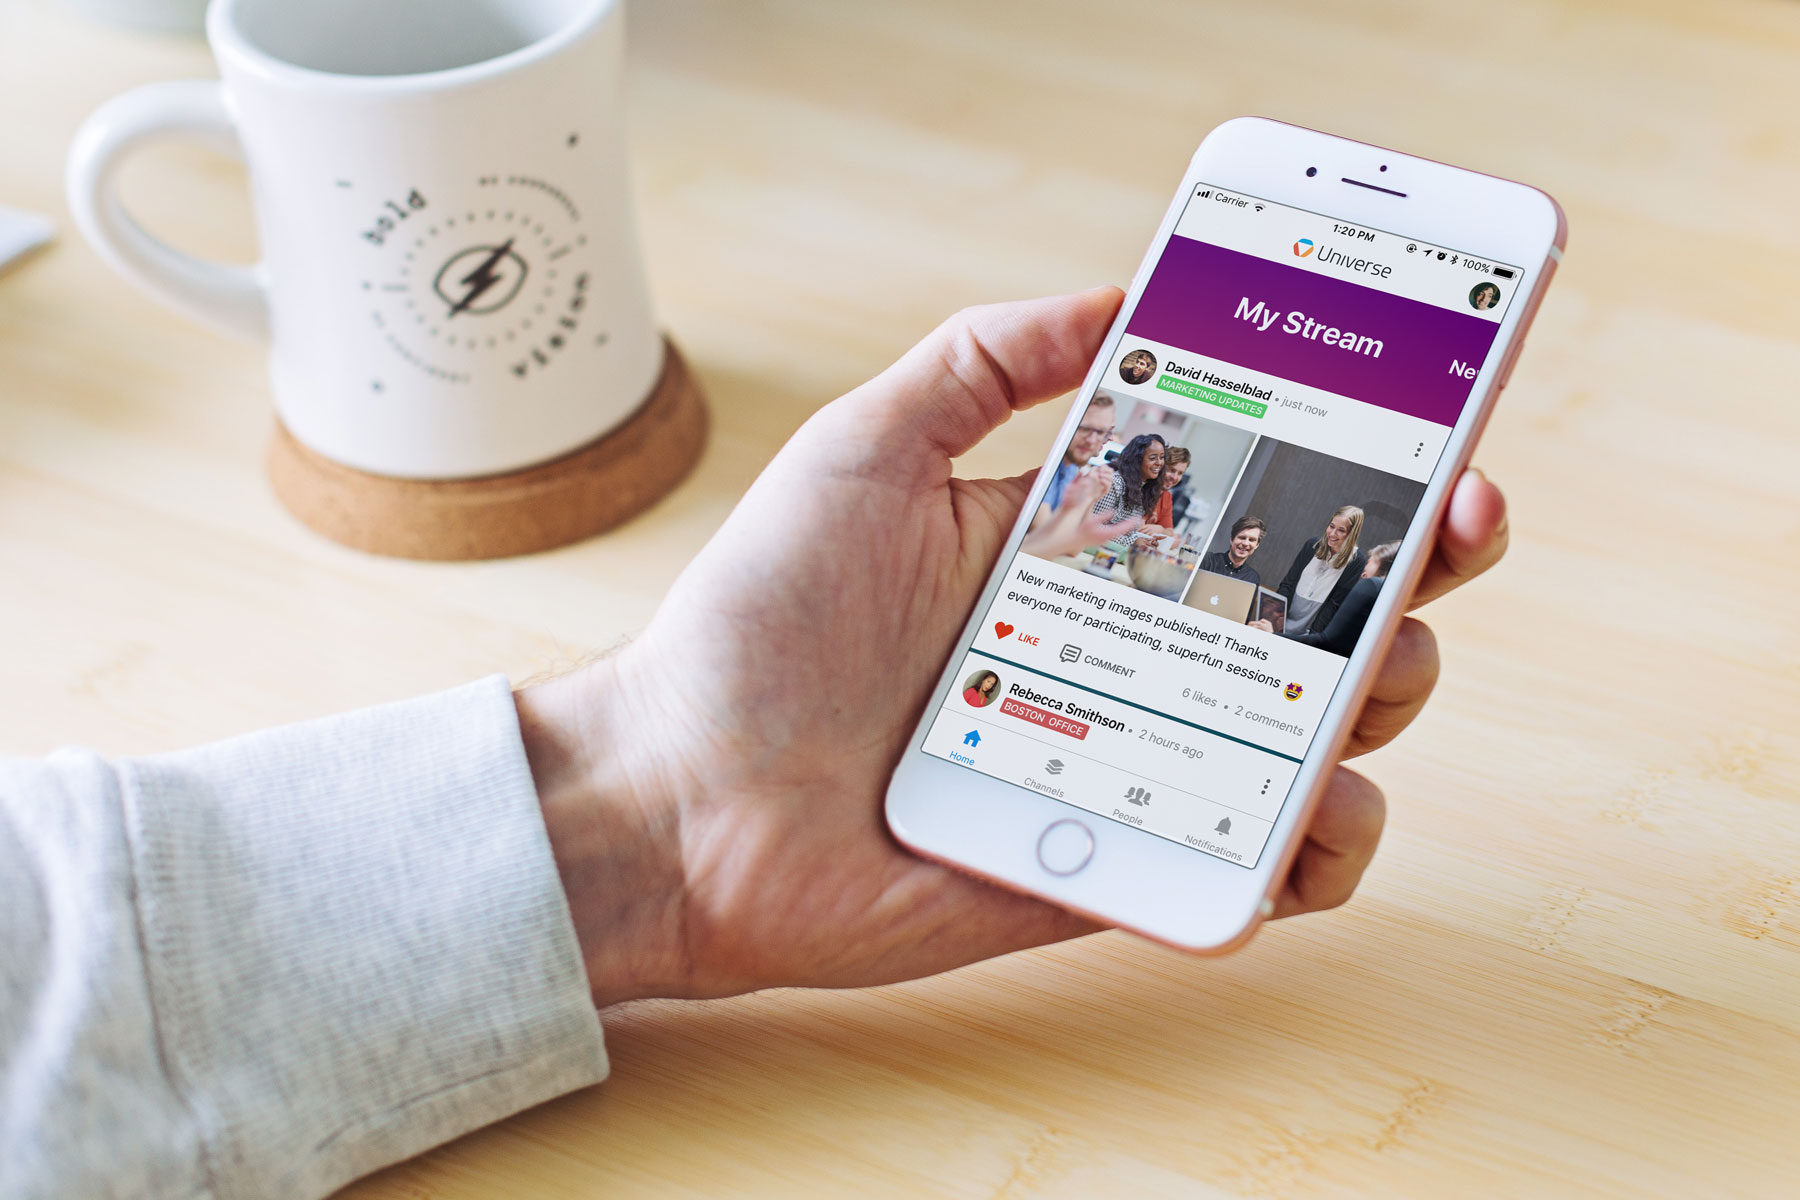 Rethinking internal communications - Happeo mobile application is here